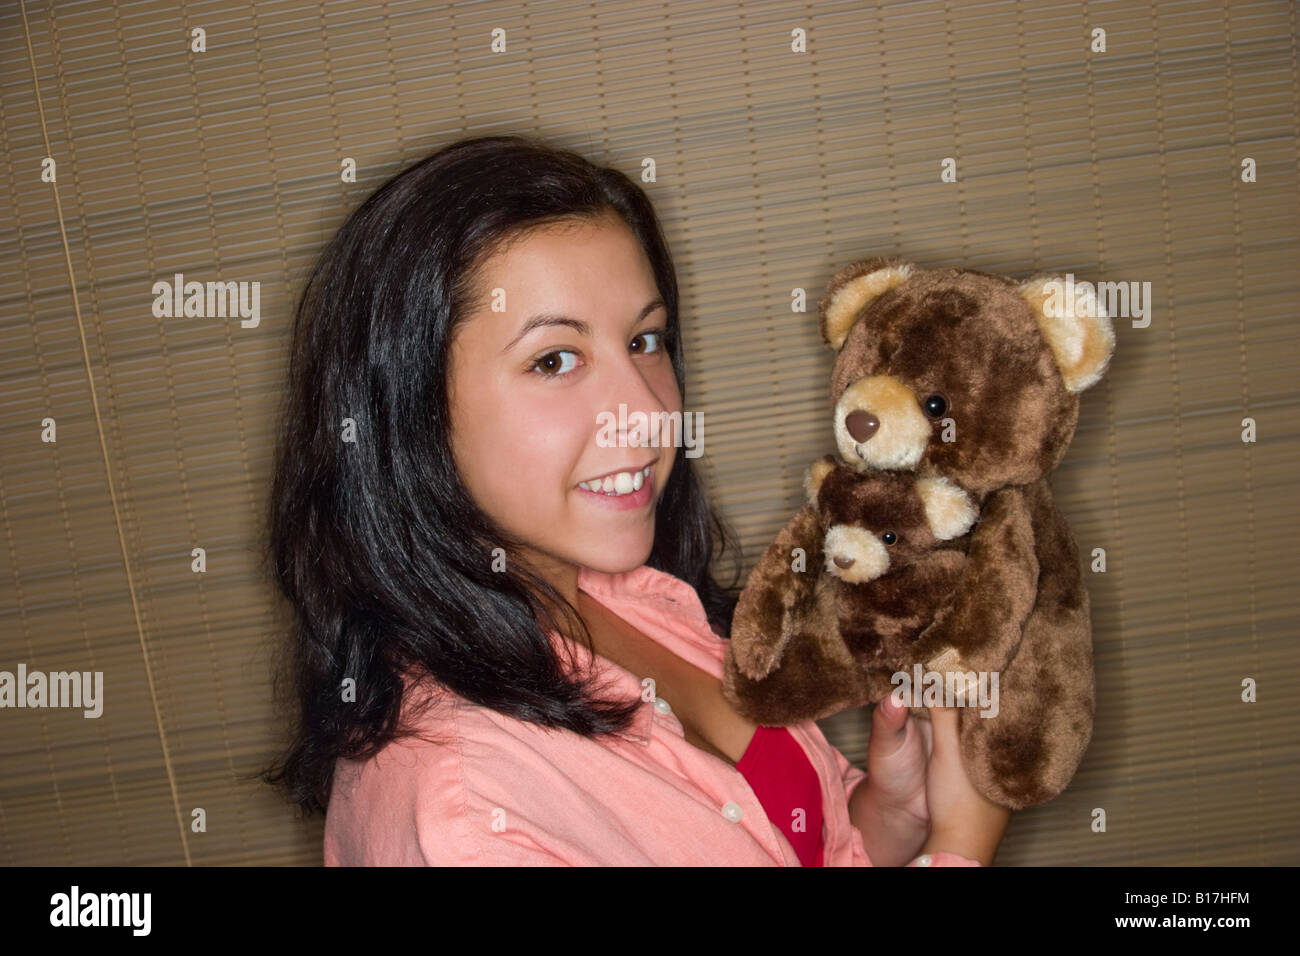 Teen girl holding a pair of stuffed animals Model Released - Stock Image